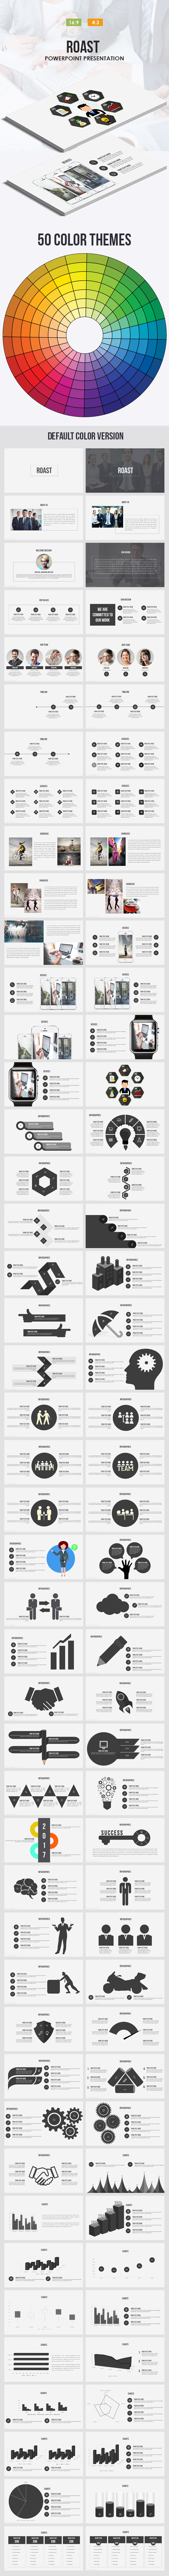 Roast Powerpoint Presentation Template - Business PowerPoint Templates